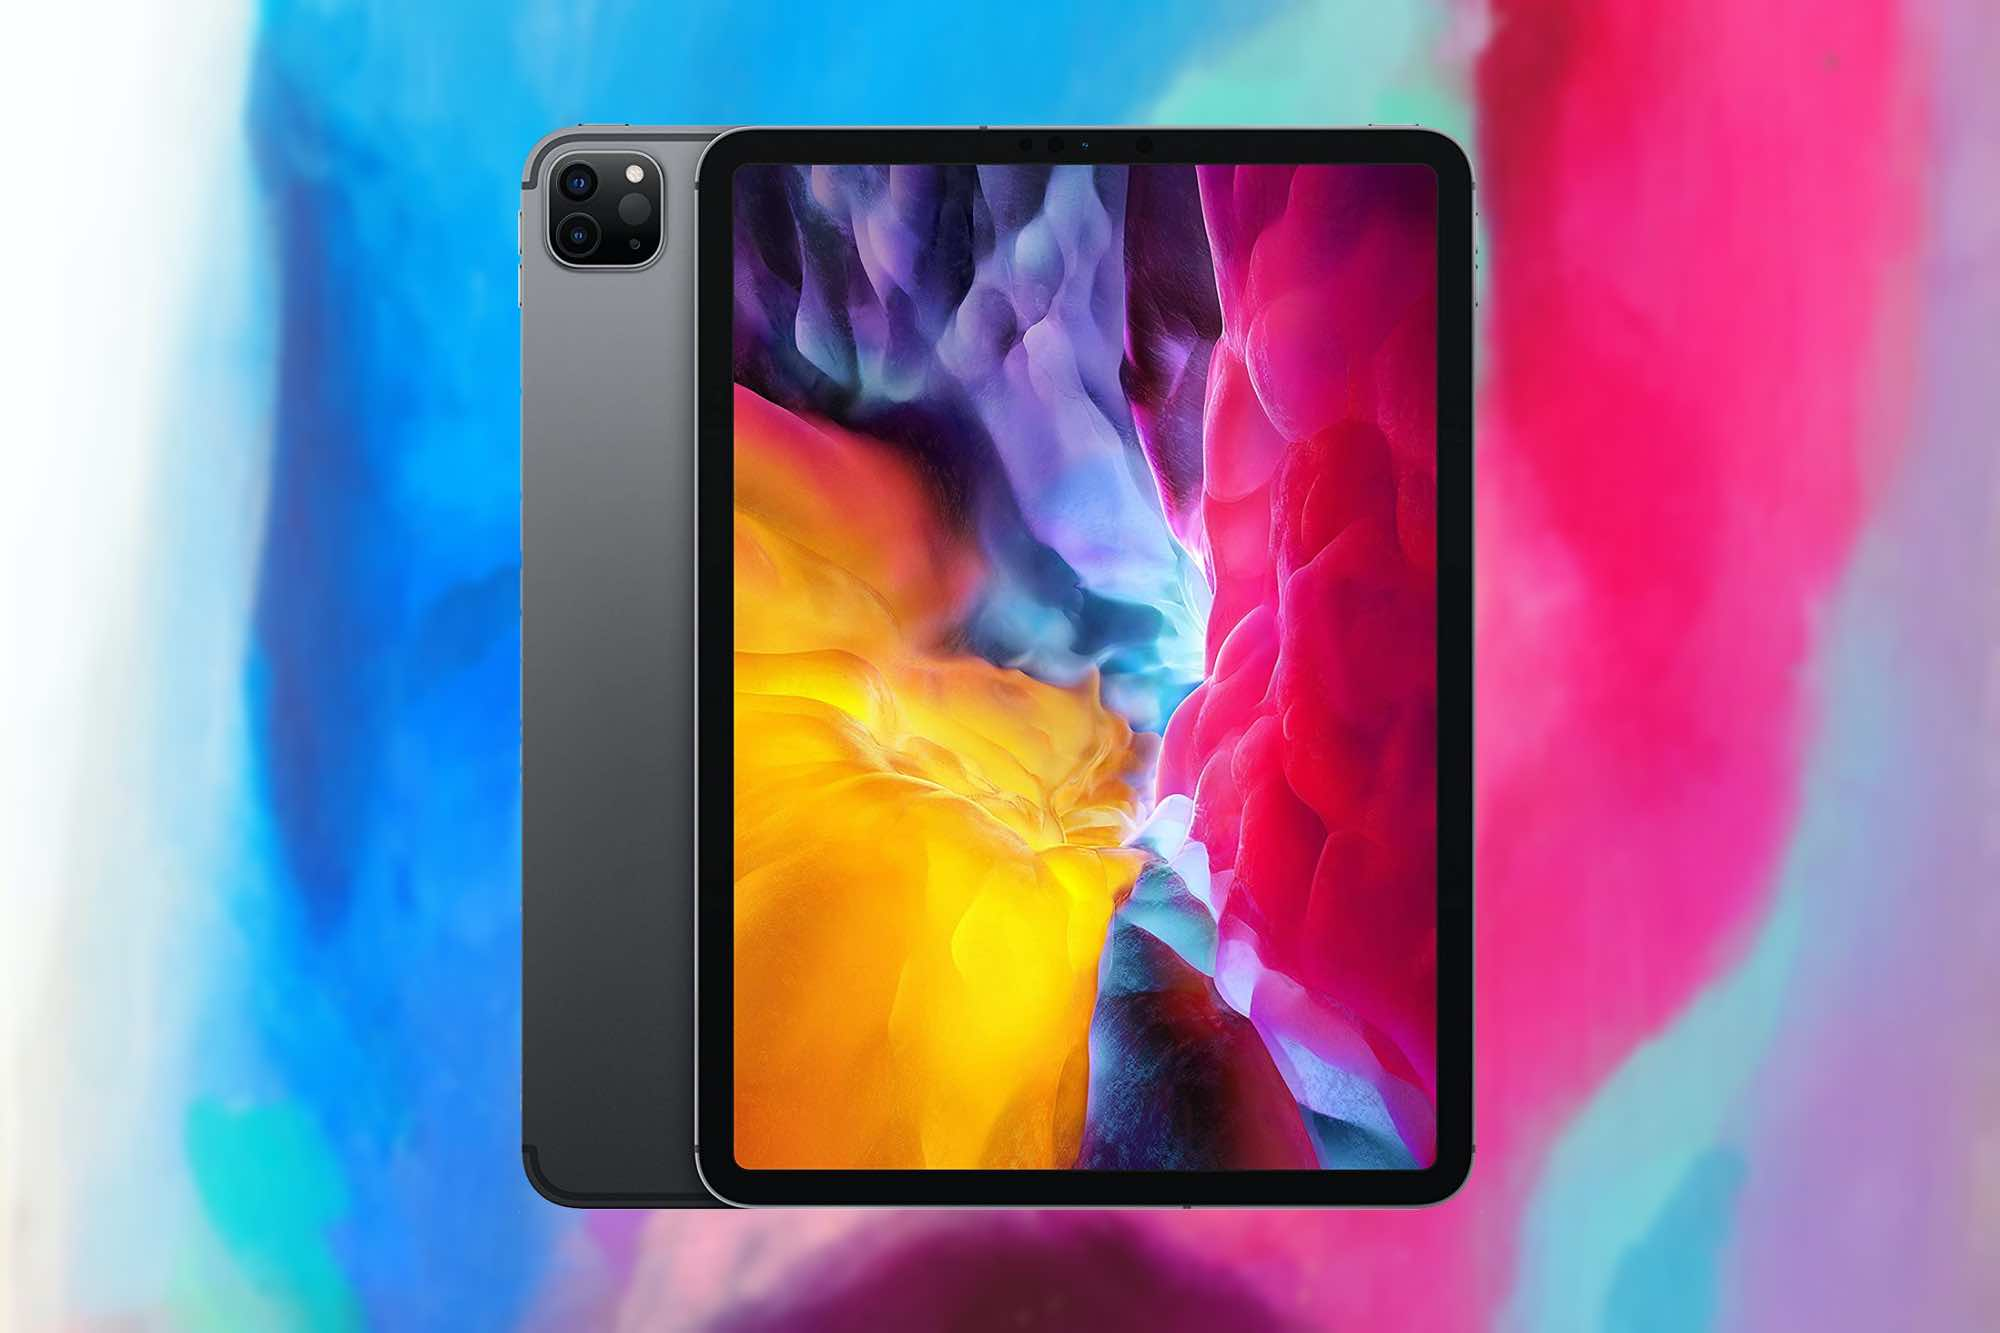 Start 2021 With 11 inch iPad Pro At $50 Discount ...